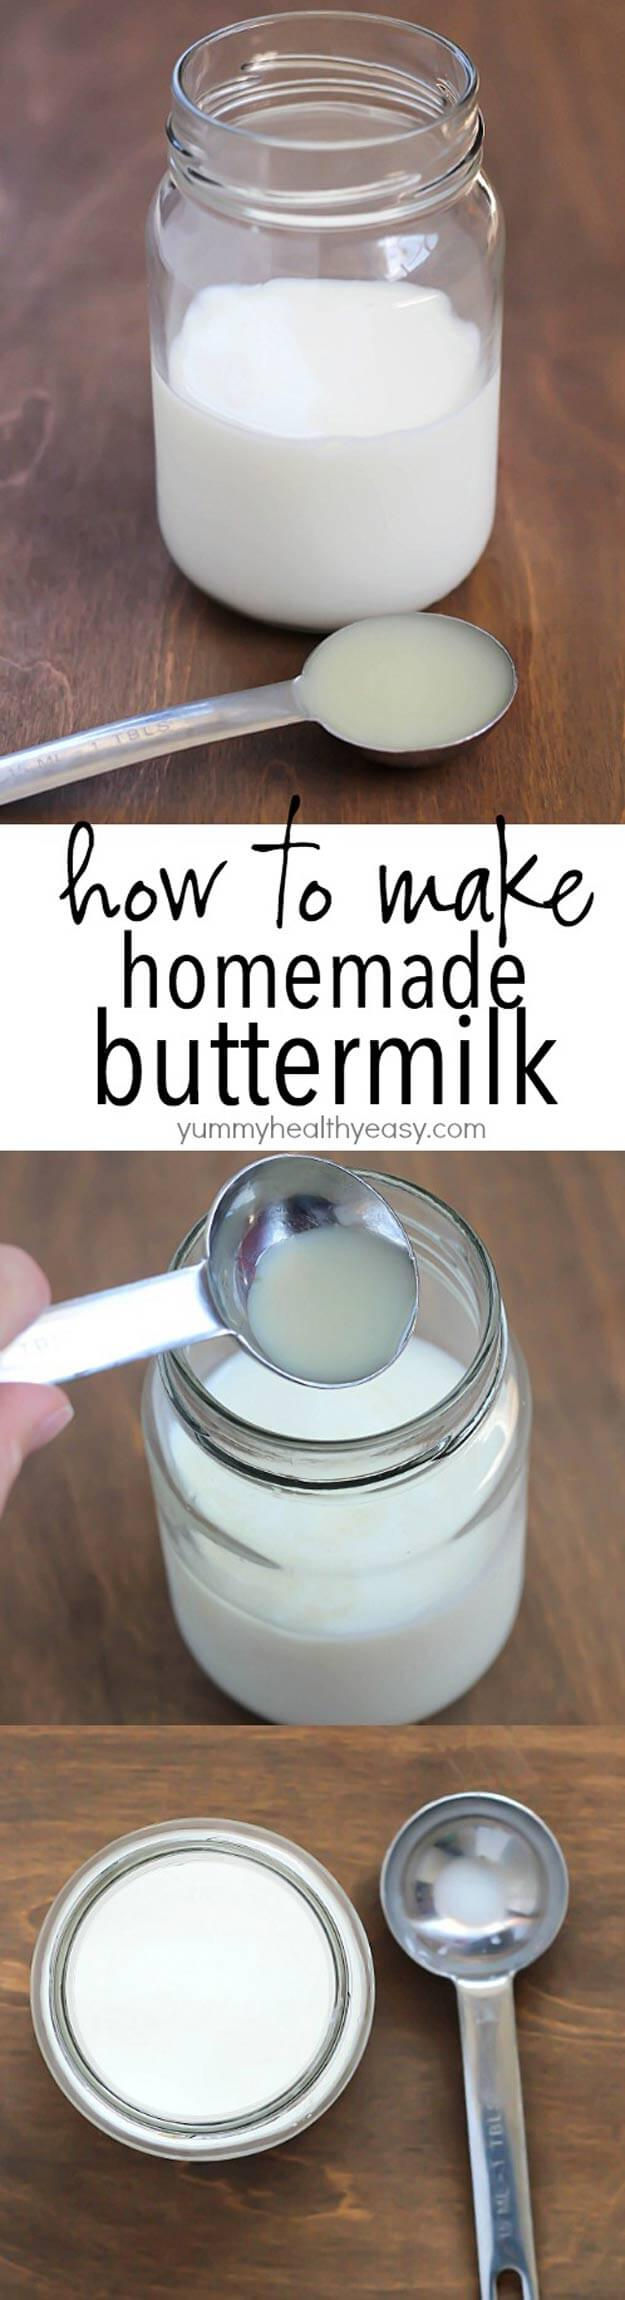 Make Easy Homemade Buttermilk